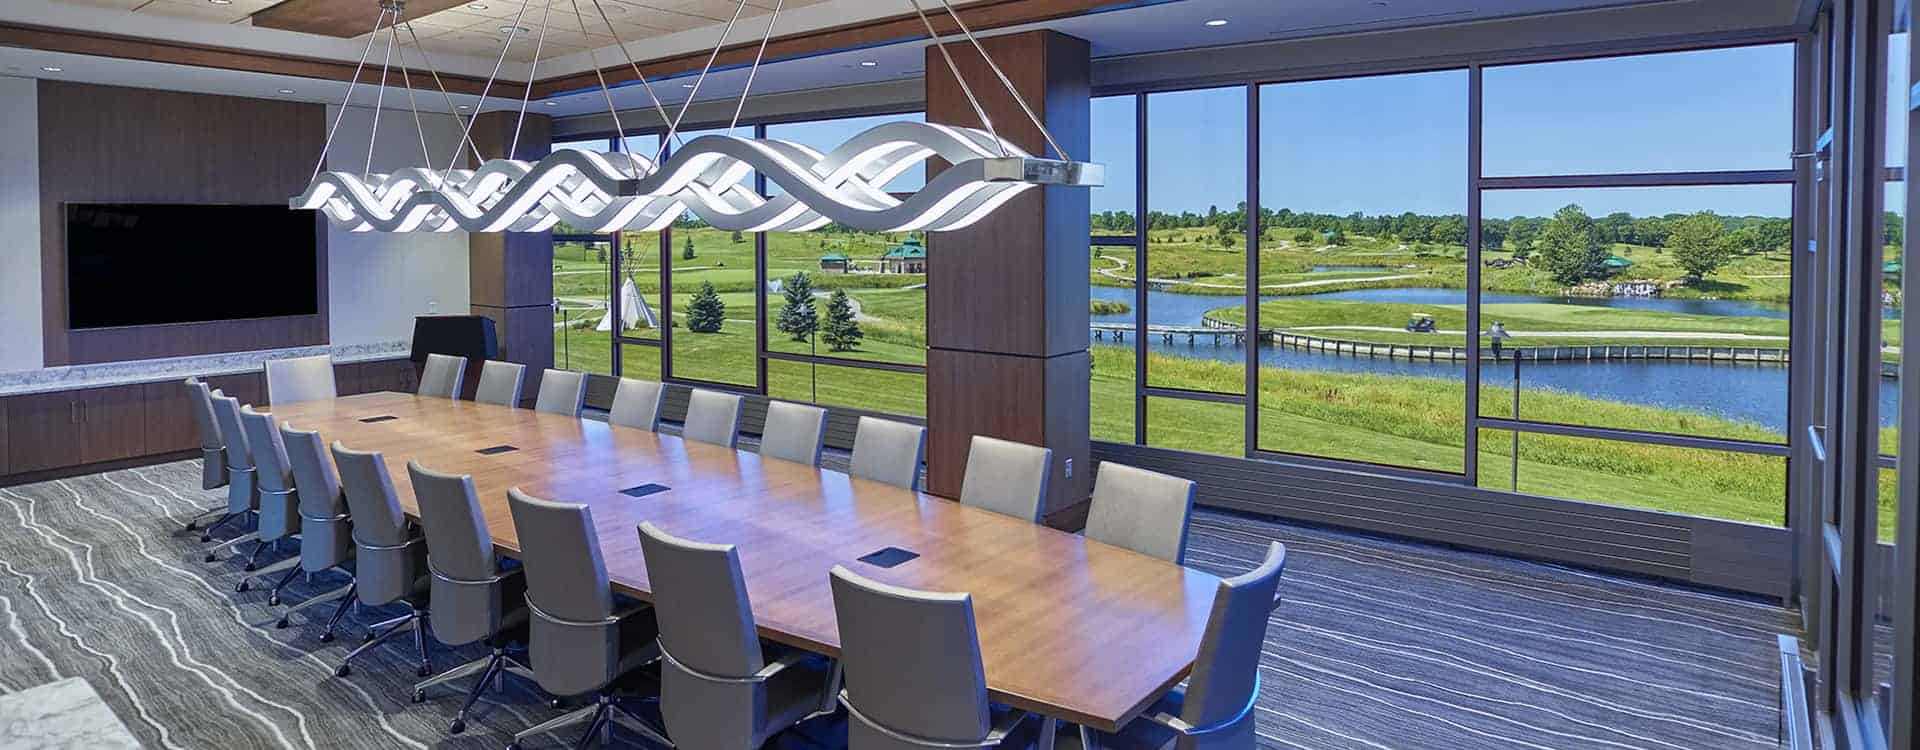 Mystic Lake Boardroom by DLAA, D L ADAMS ASSOCIATES, Audio Visual & low voltage consulting, USA